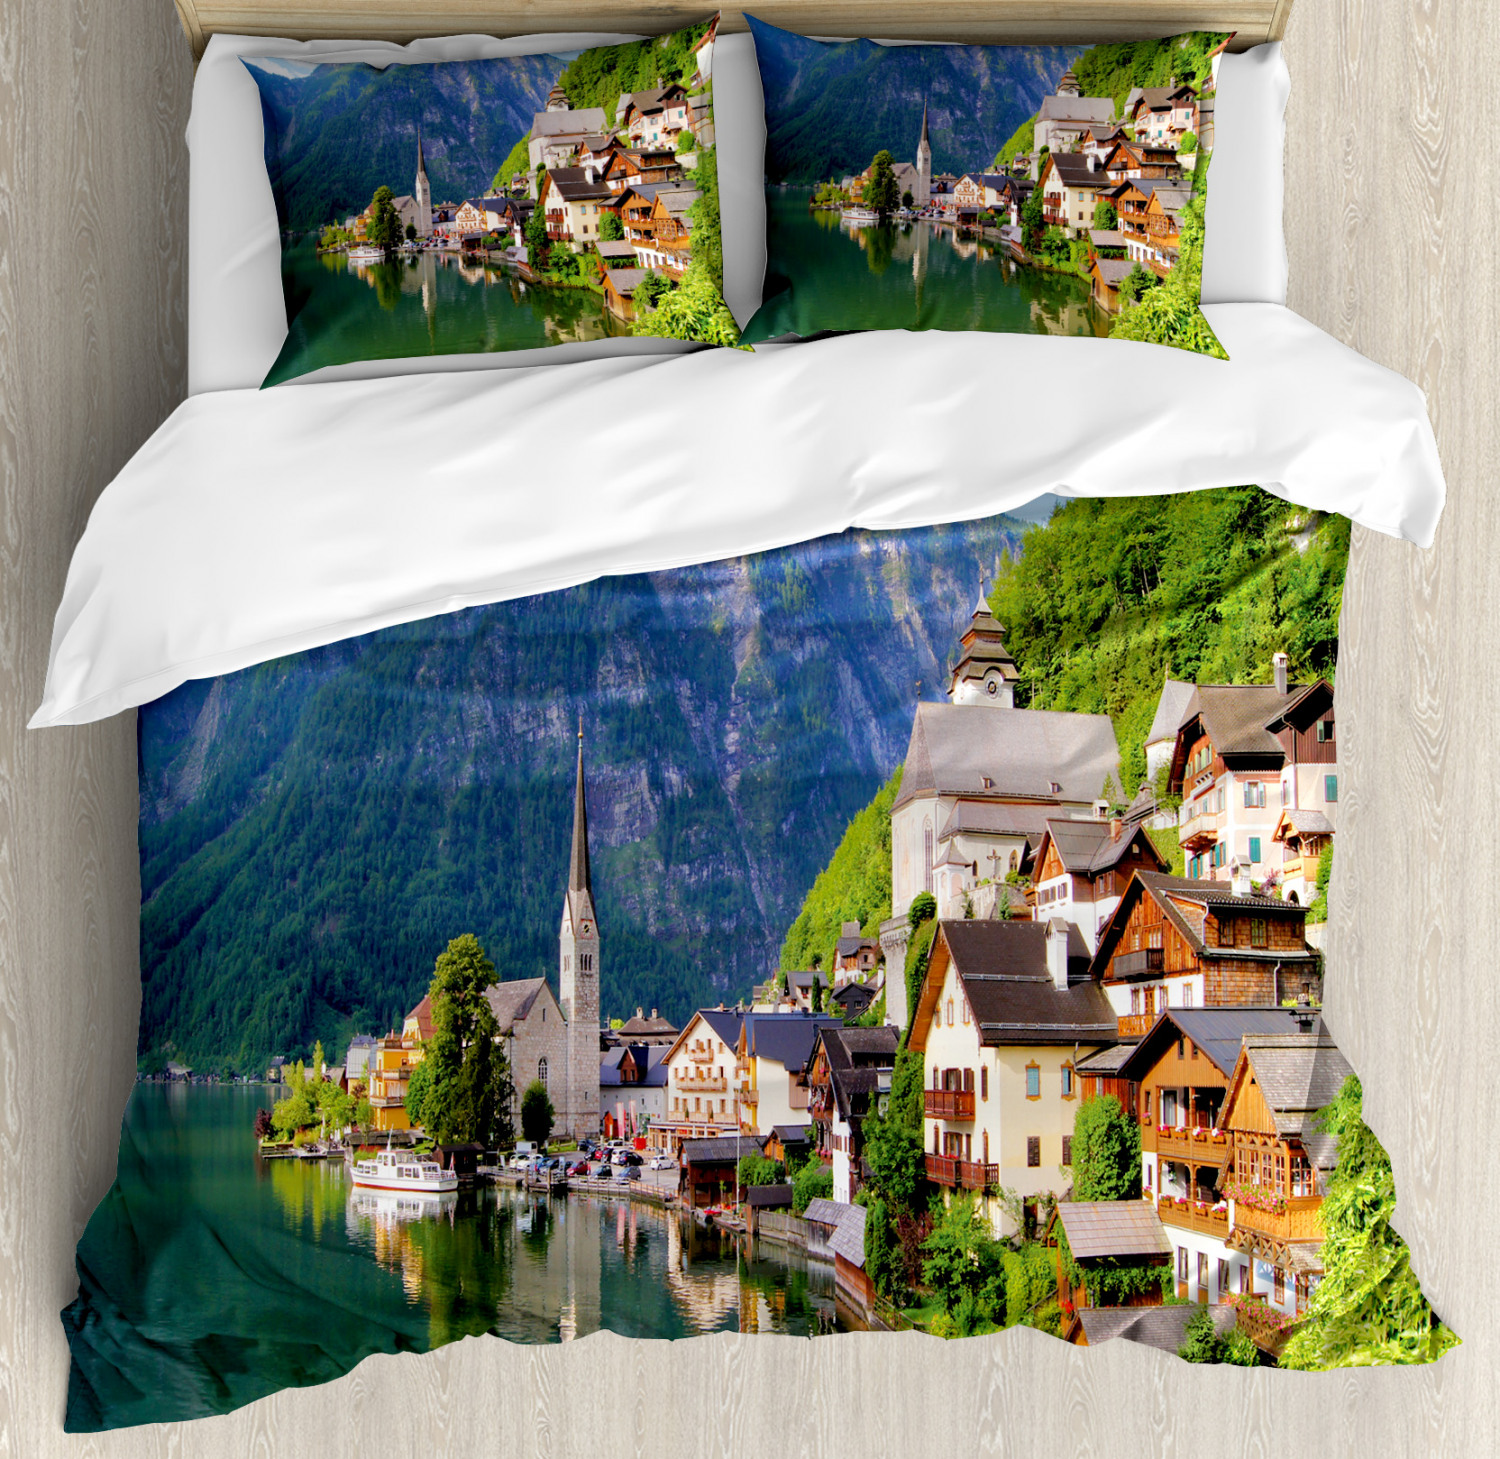 Rustic Duvet Cover Set with Pillow Shams Alps Village Small Town Print